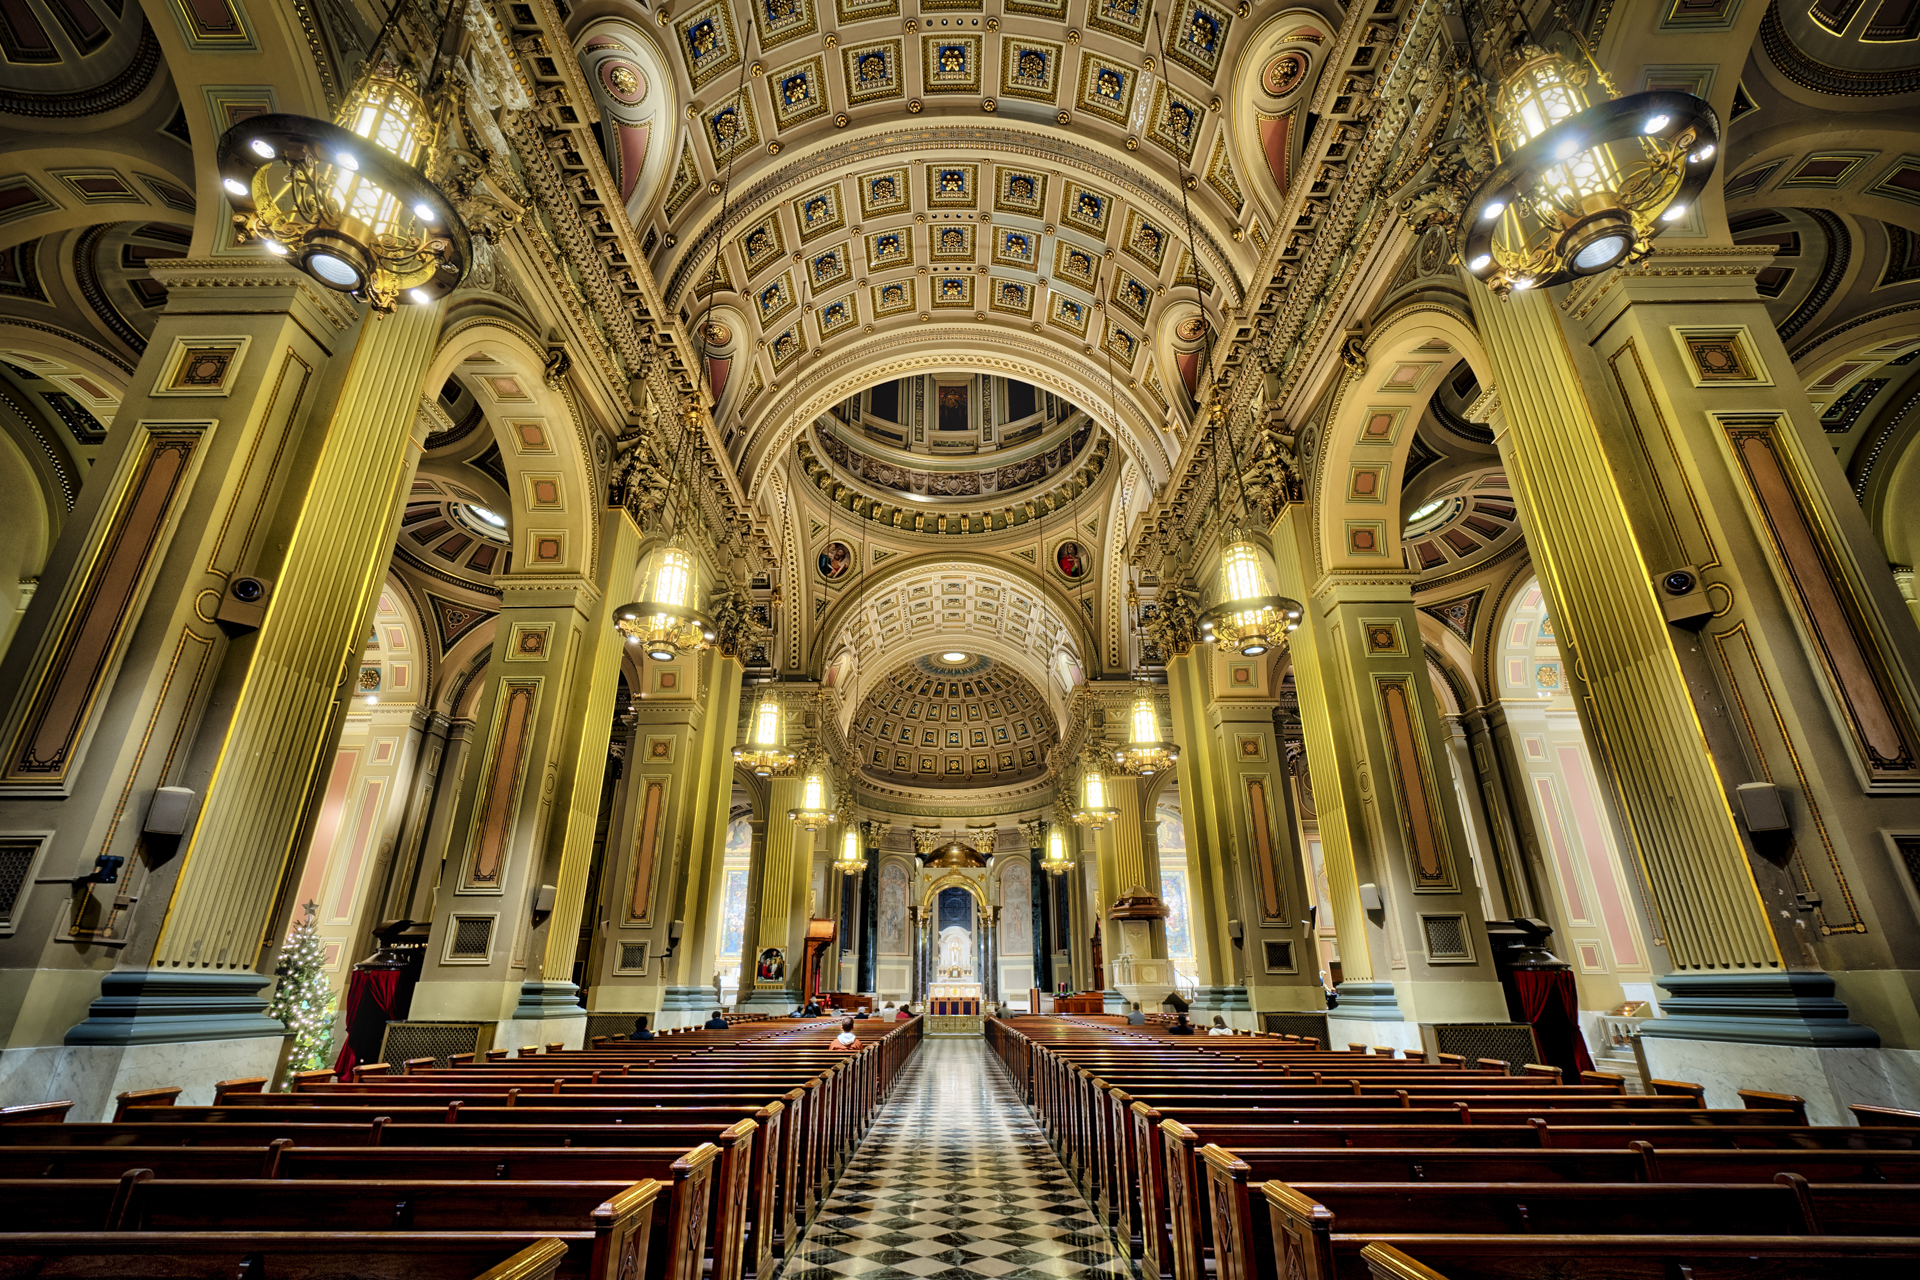 Inside the Cathedral Basilica of Saints Peter and Paul on the Ben Franklin Parkway in Philadelphia.